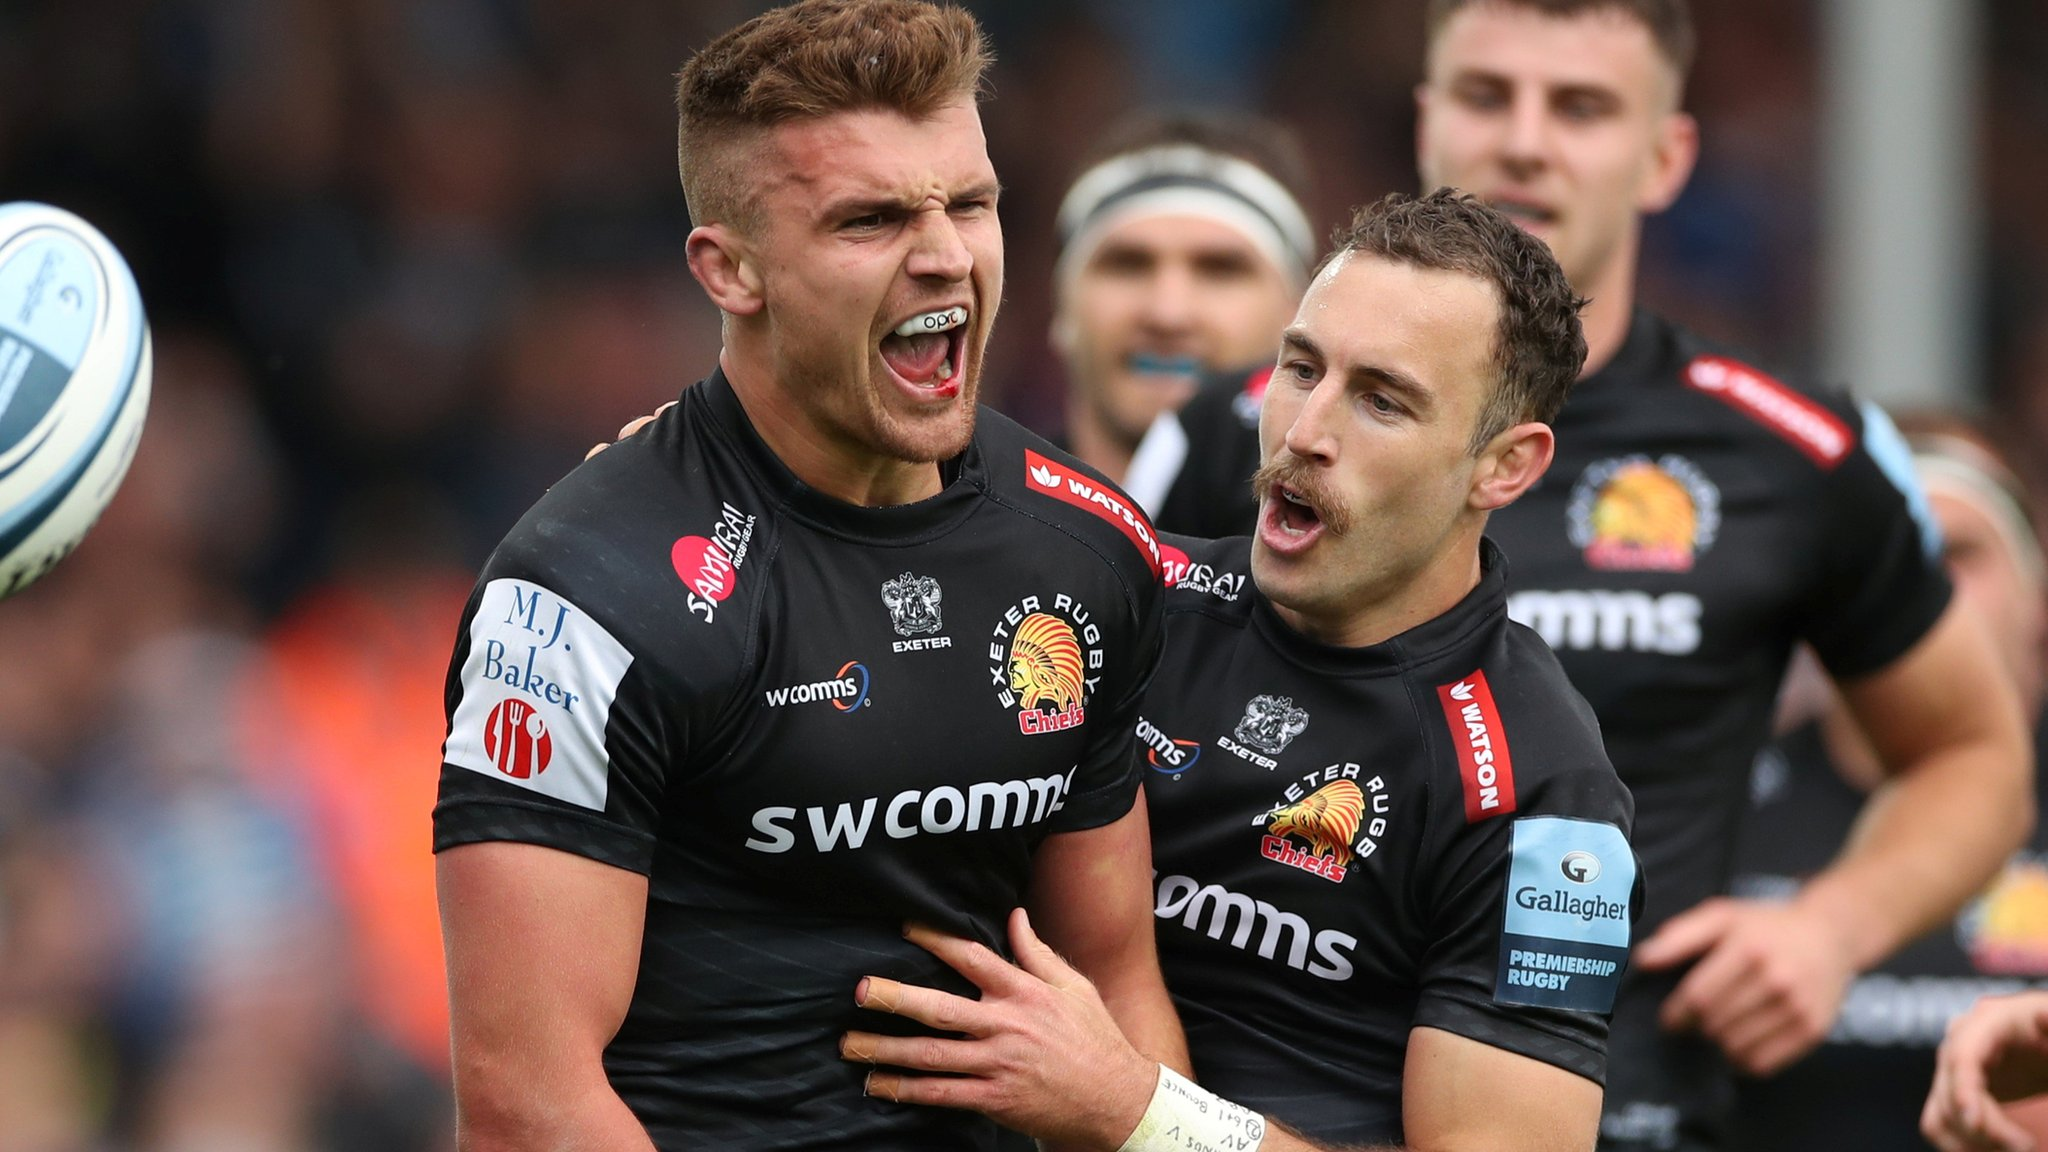 Premiership: Exeter Chiefs beat Northampton Saints 40-21 to finish top